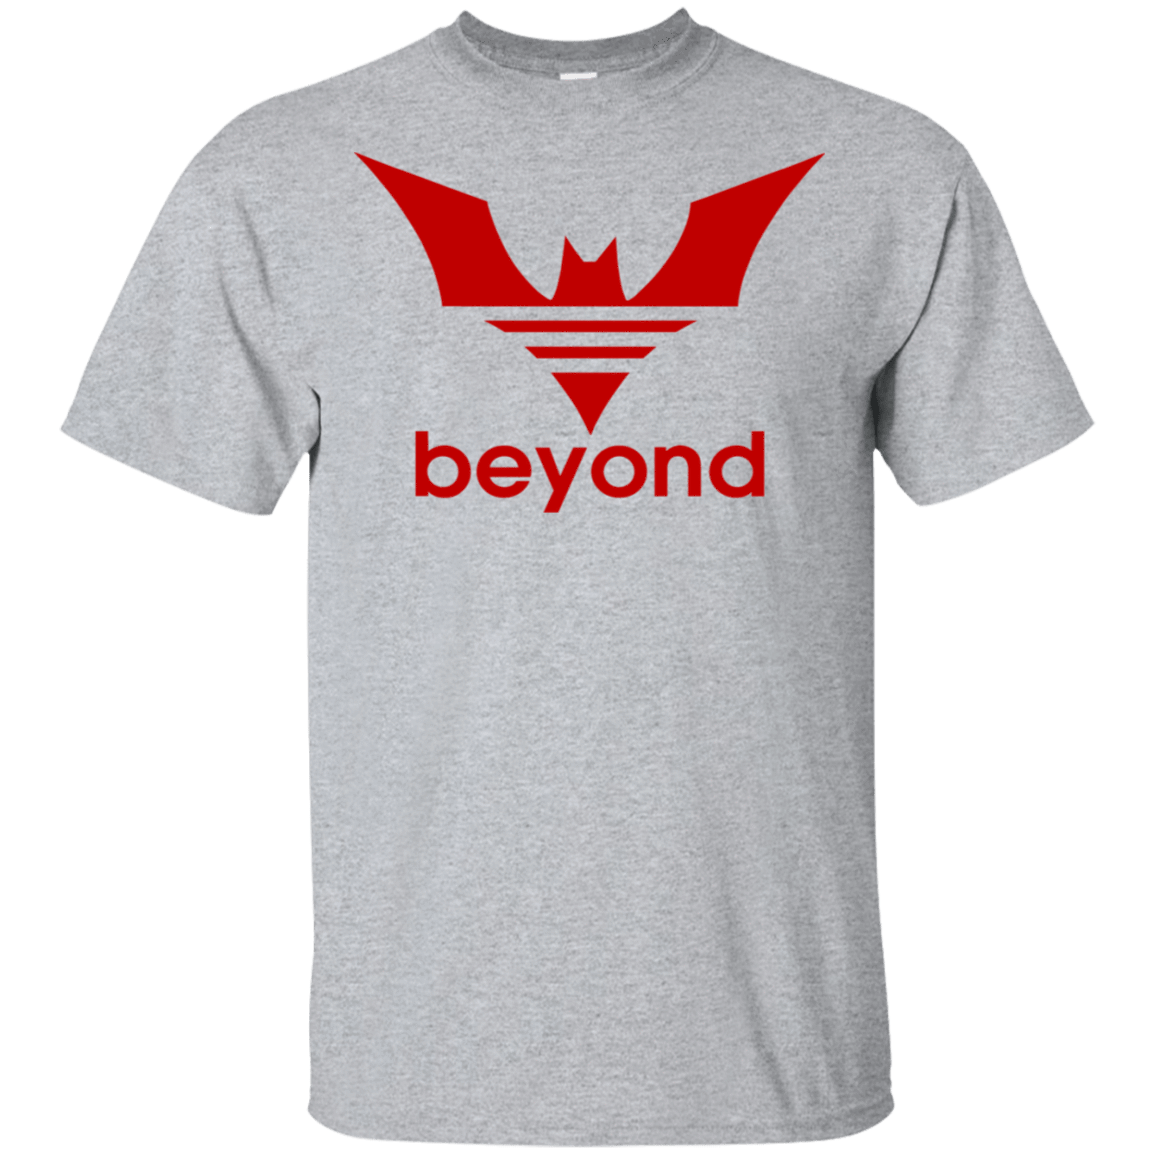 T-Shirts Sport Grey / S Future Bat Athletics T-Shirt